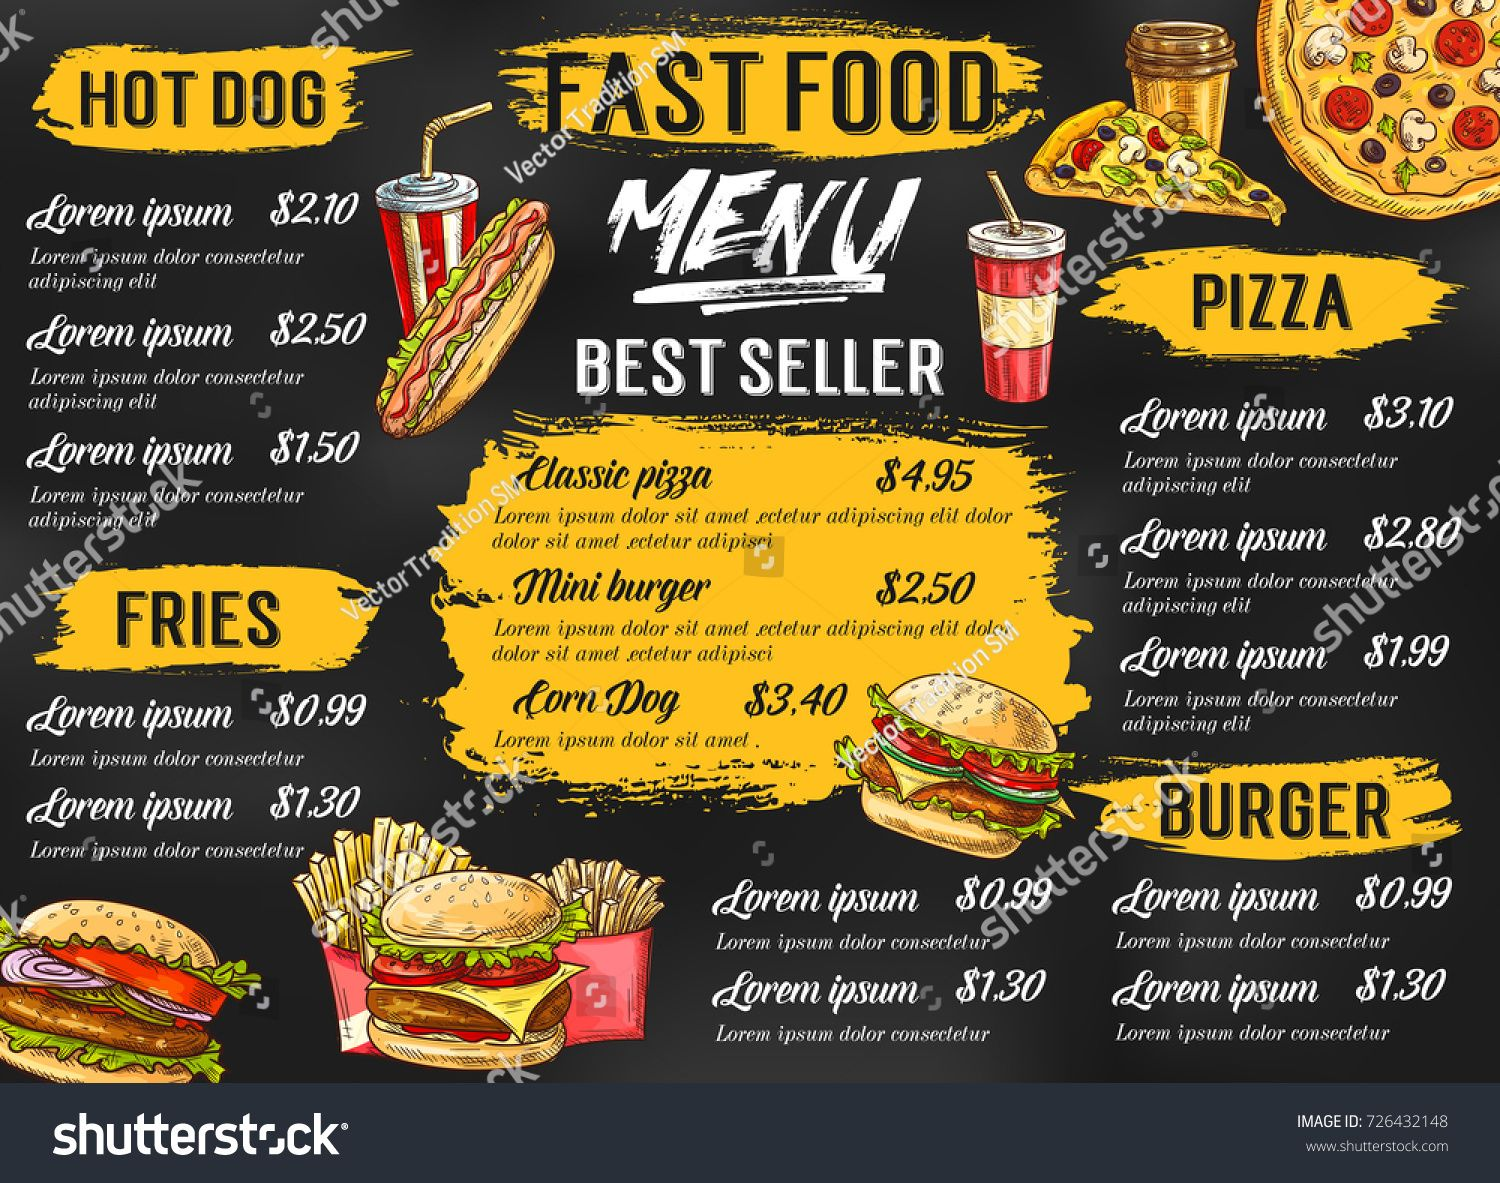 Fast Food Menu Template For Fastfood Restaurant Or Cafe Vector